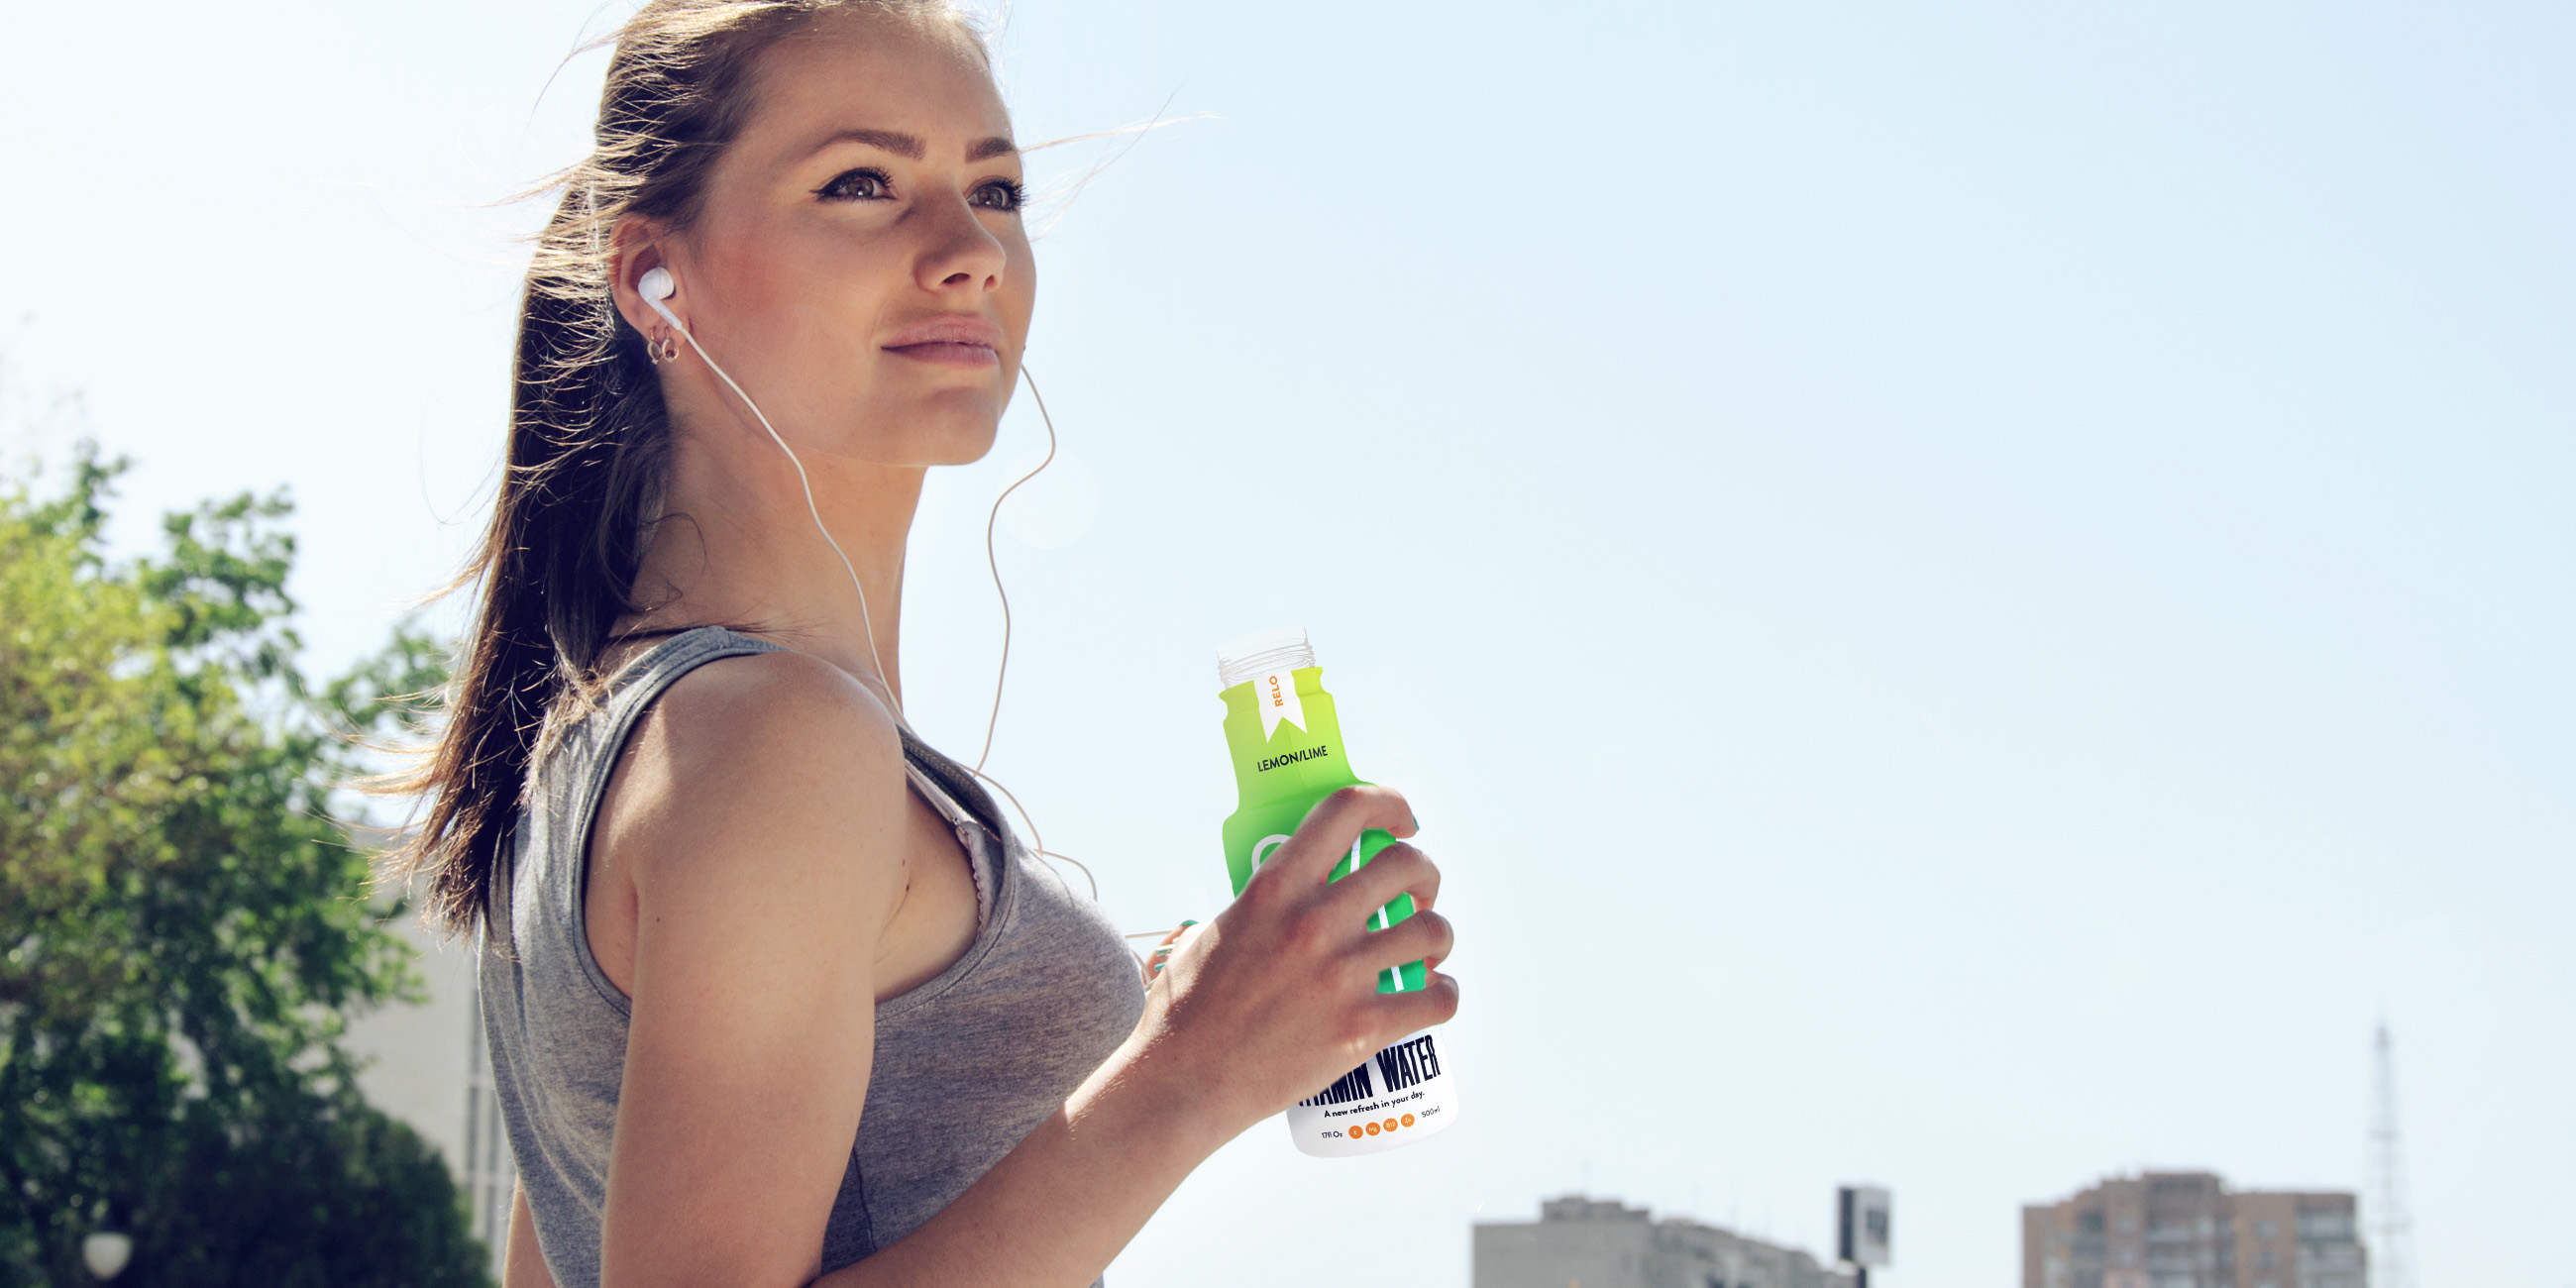 Sport woman drinking water and listening to music